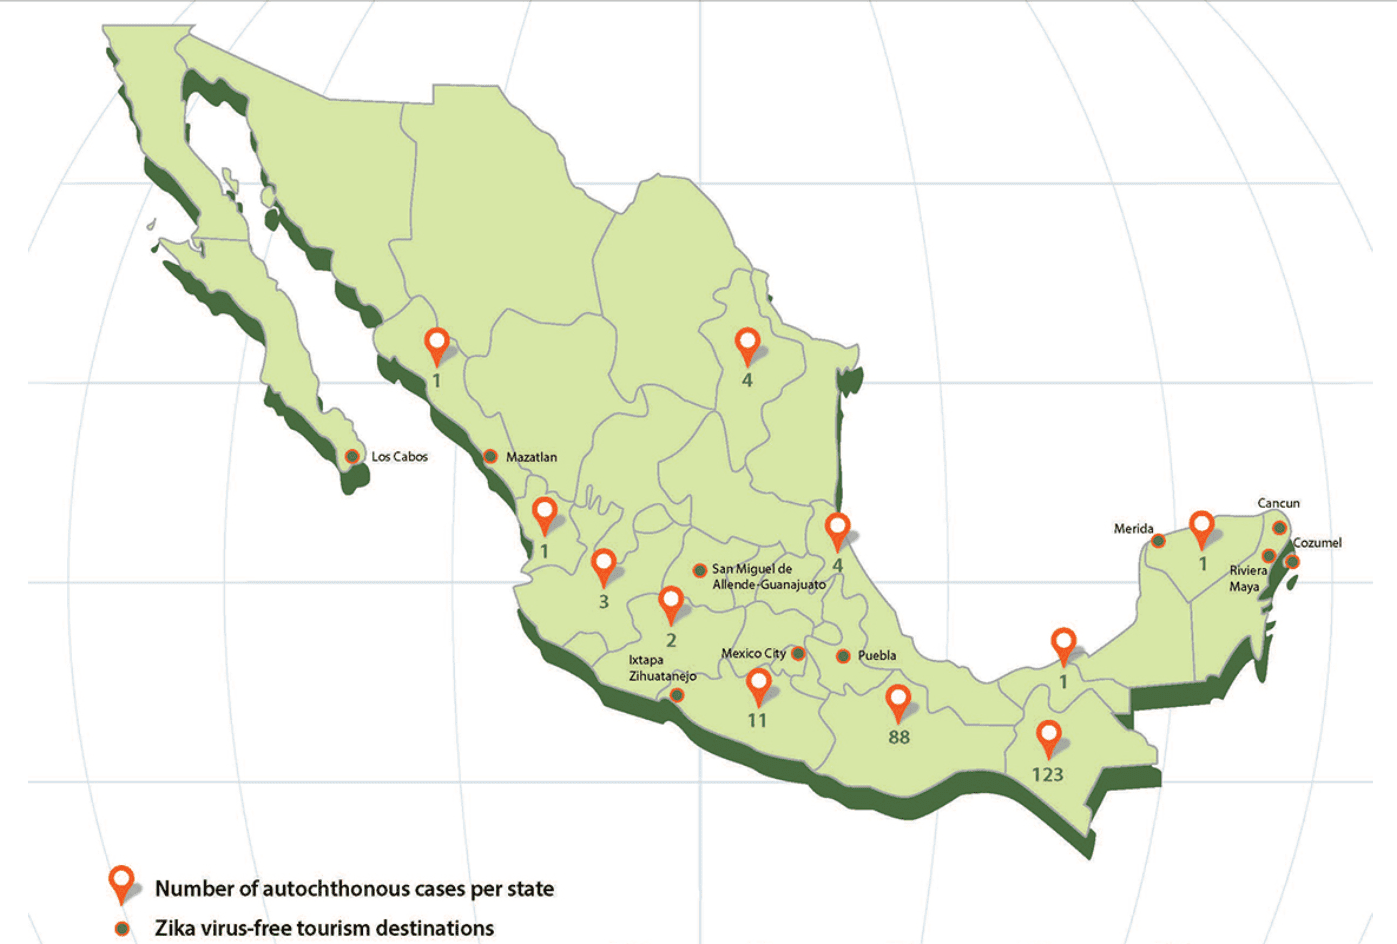 Carte Zika Asie.What You Should Know About The Zika Virus In Mexico